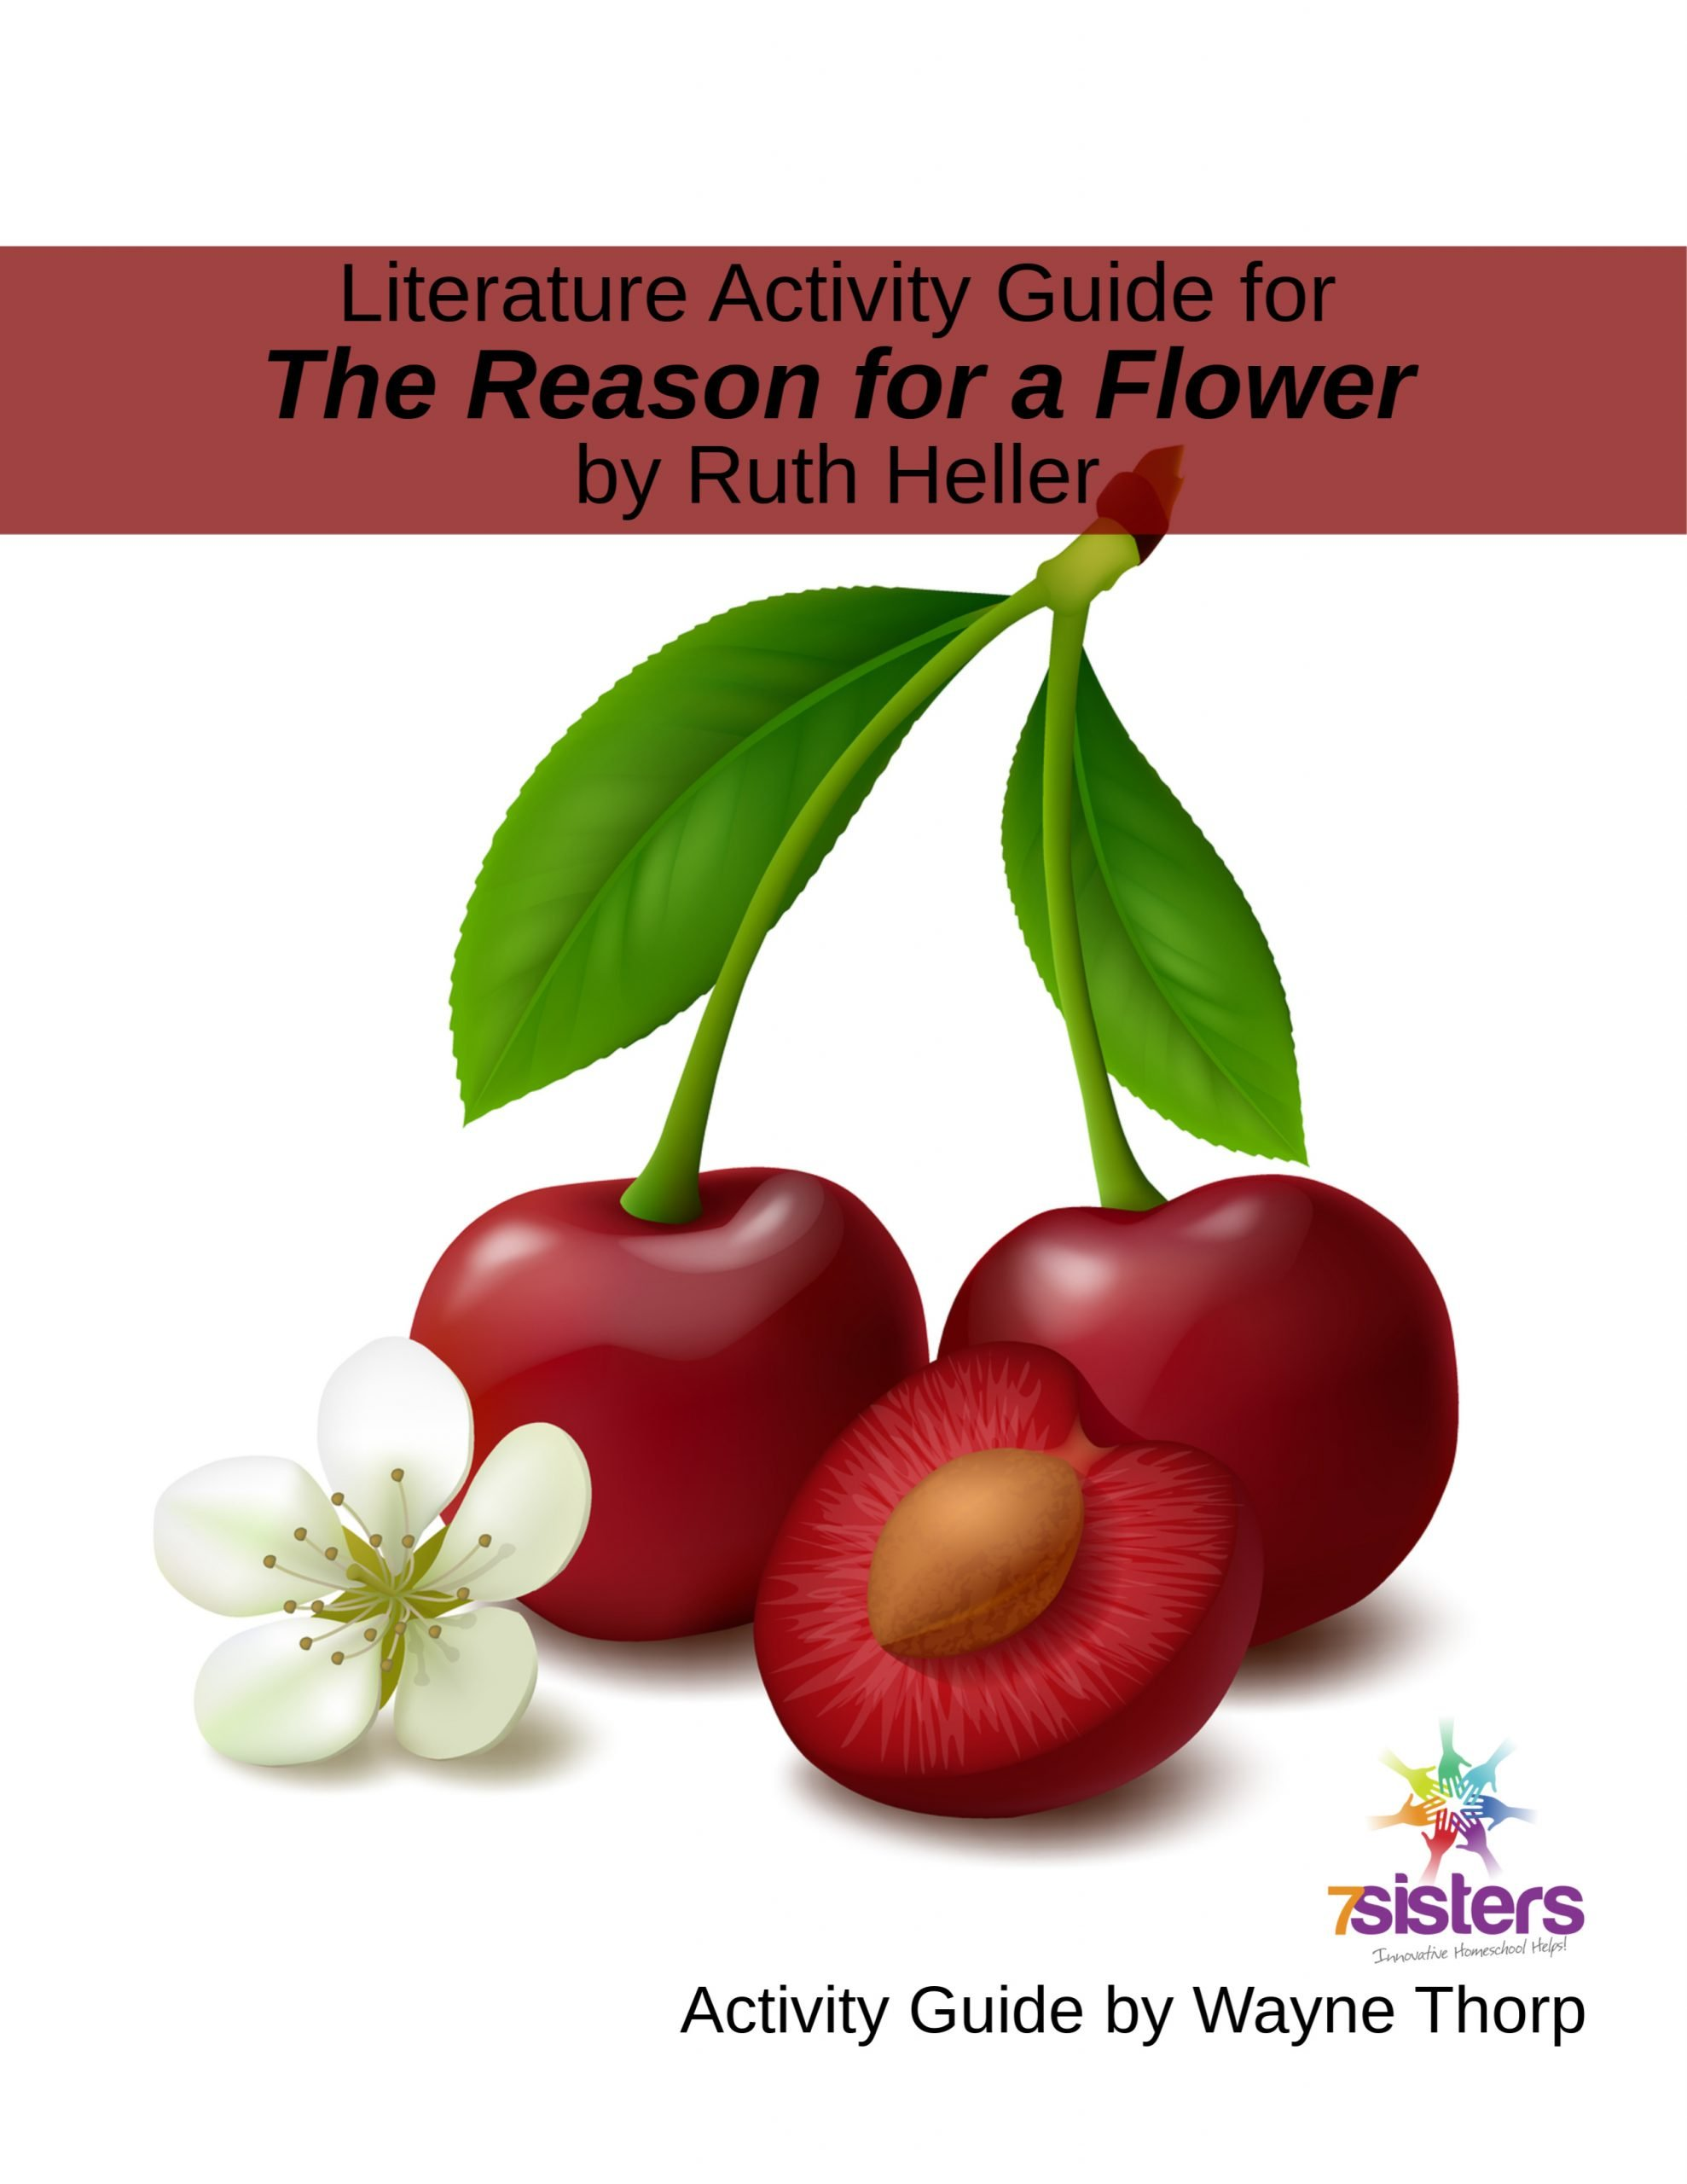 Literature Activity Guide for The Reason for a Flower